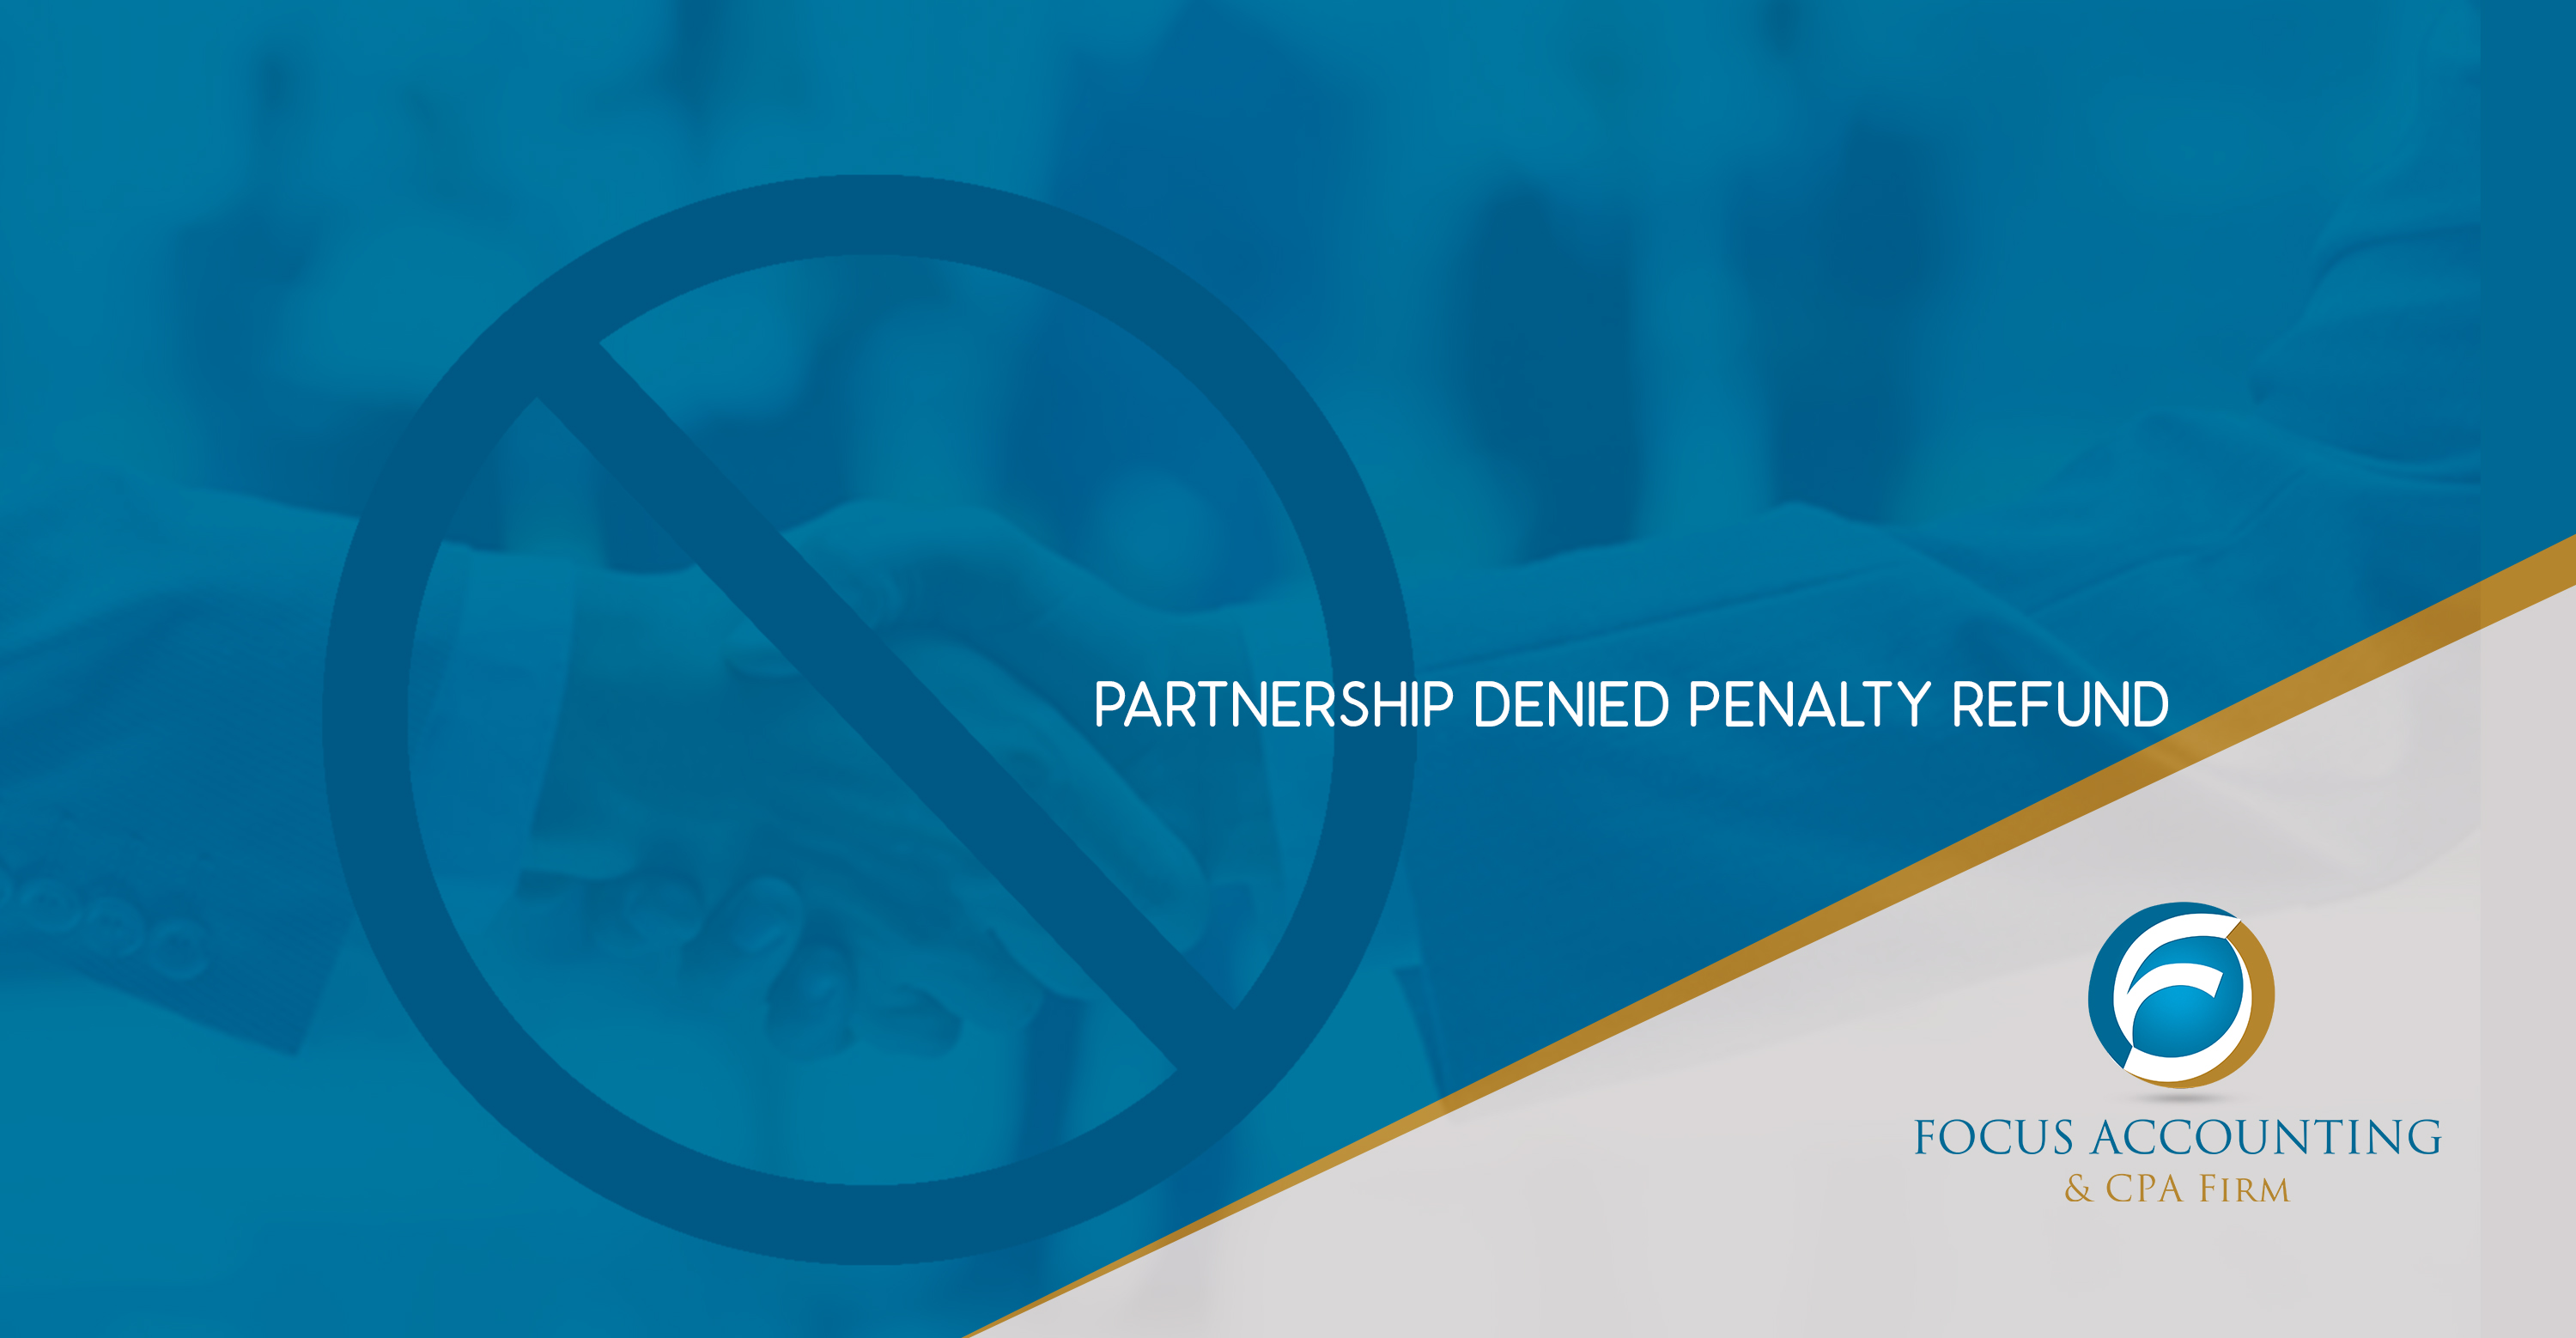 Partnership Denied Penalty Refund